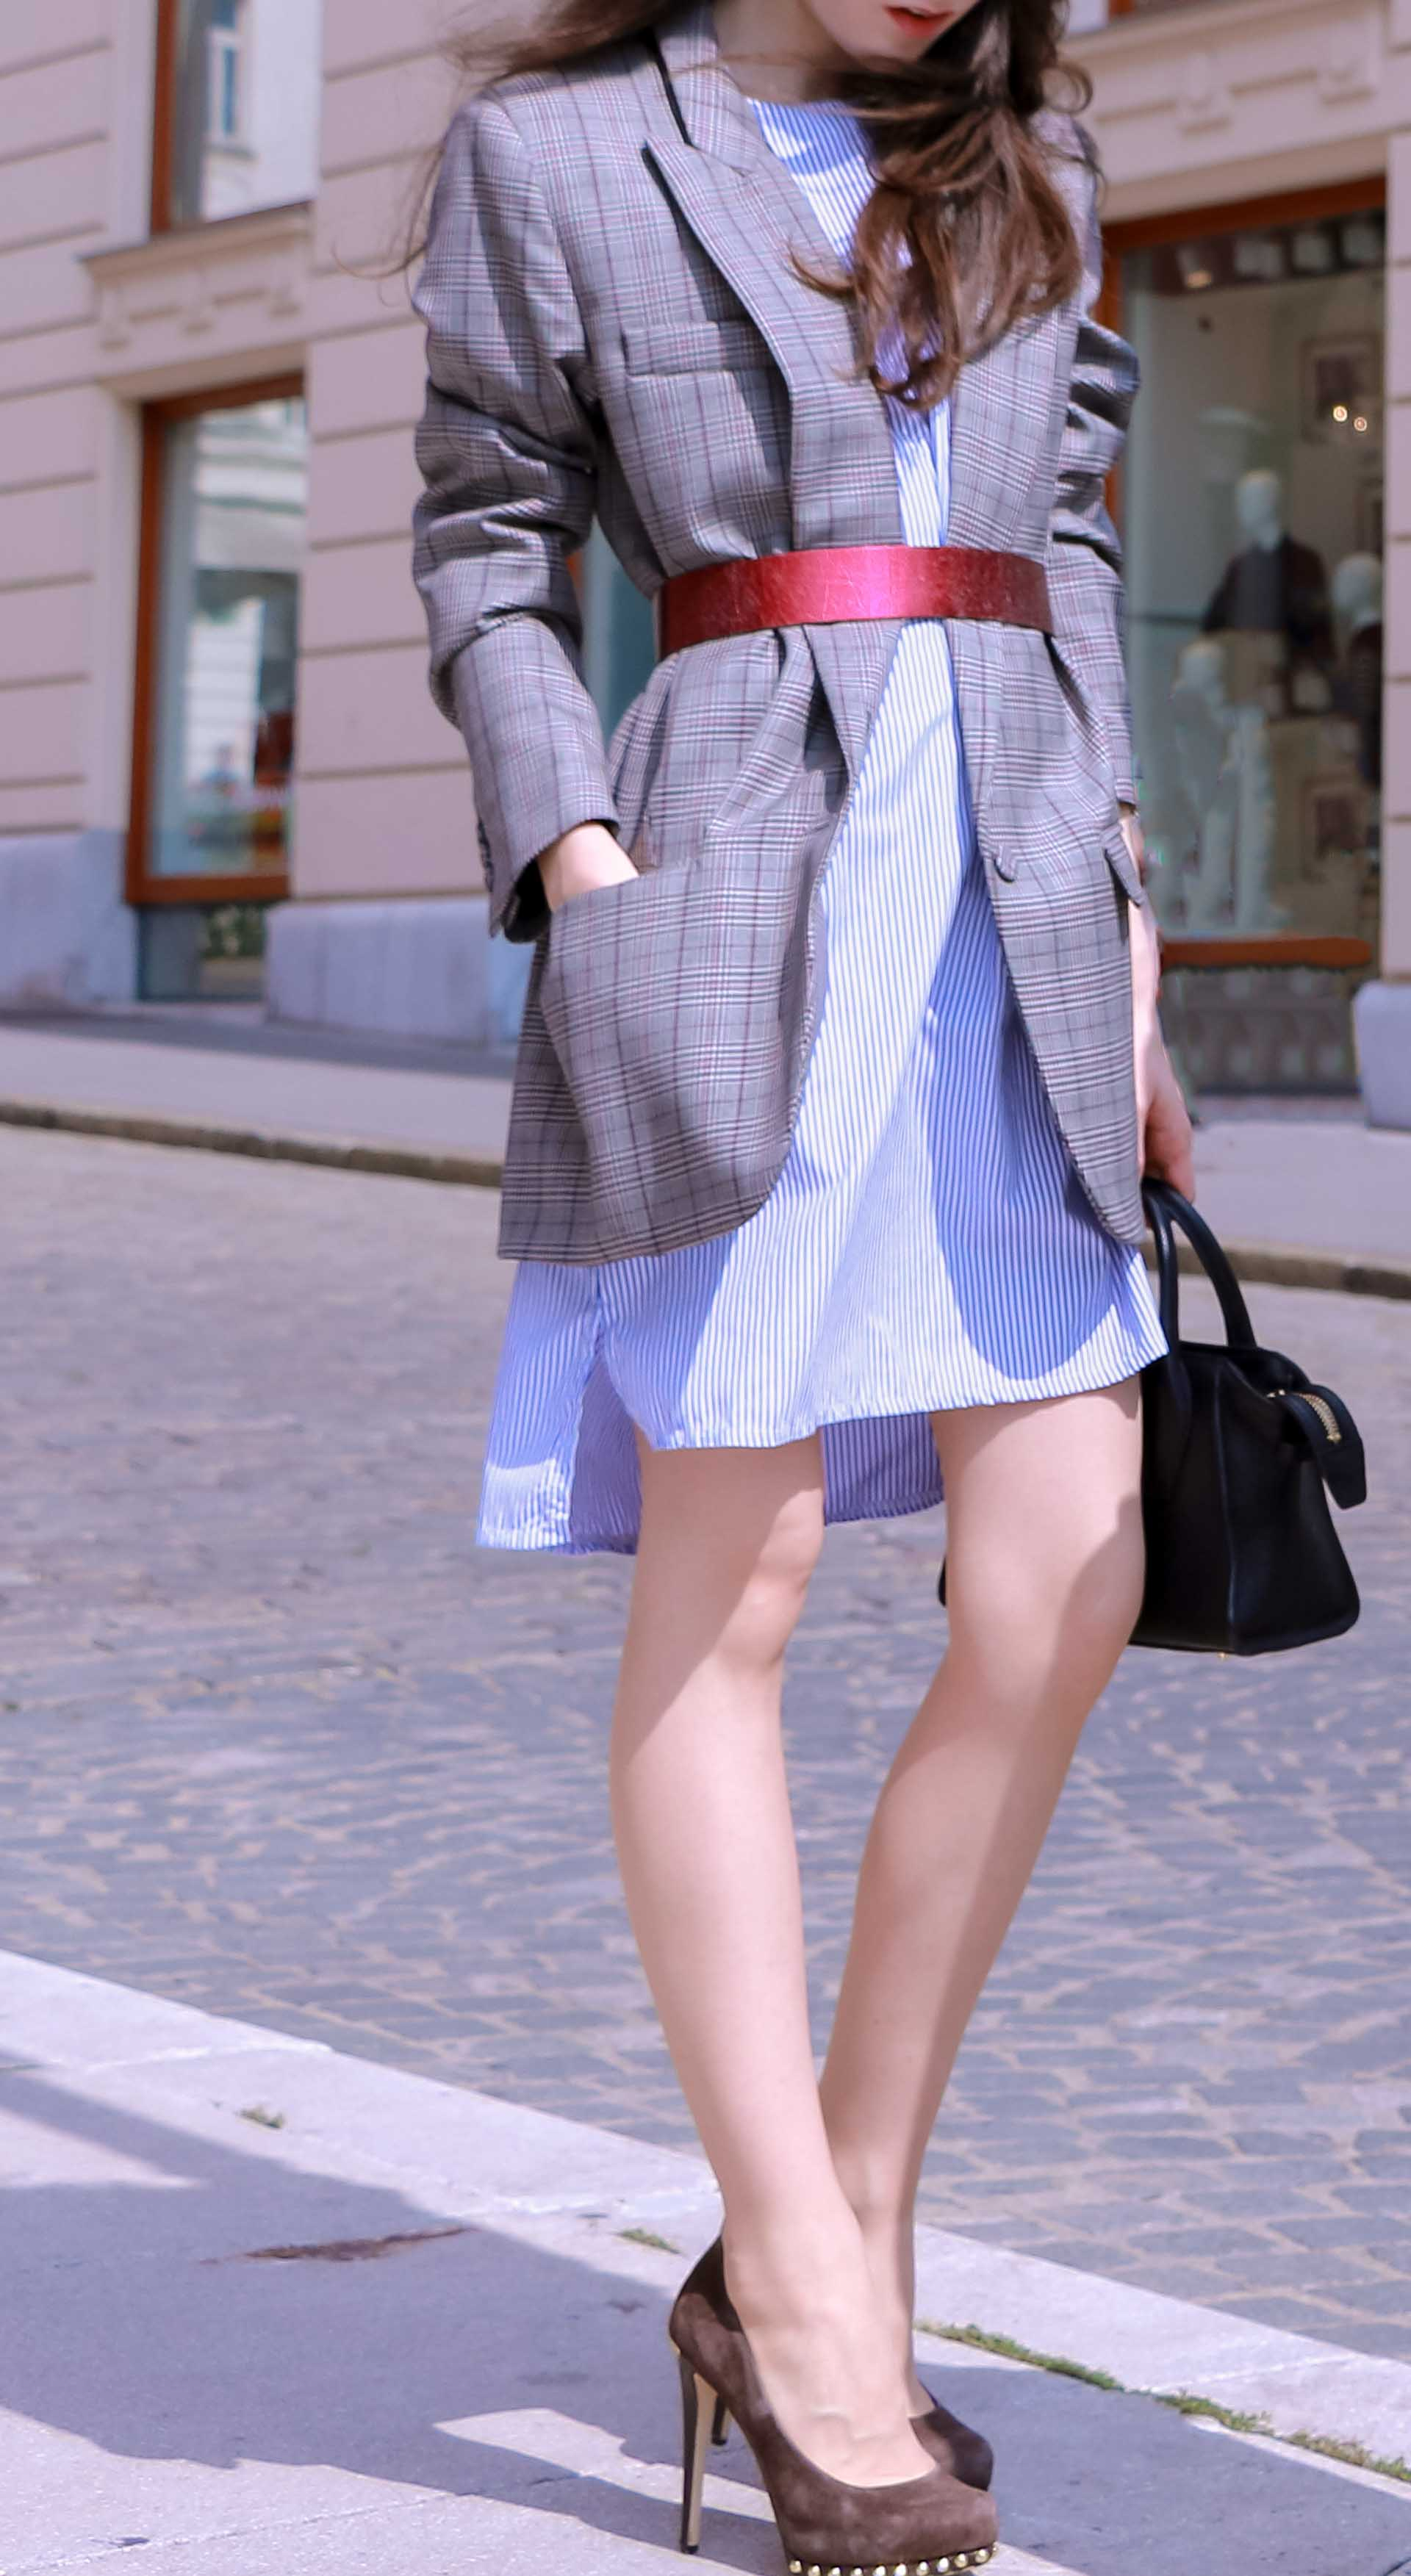 Veronika Lipar Fashion Blogger of Brunette from Wall Street dressed in Erika Cavallini plaid blazer, blue striped shirtdress, red belt, brown court shoes, black top handle bag in Ljubljana